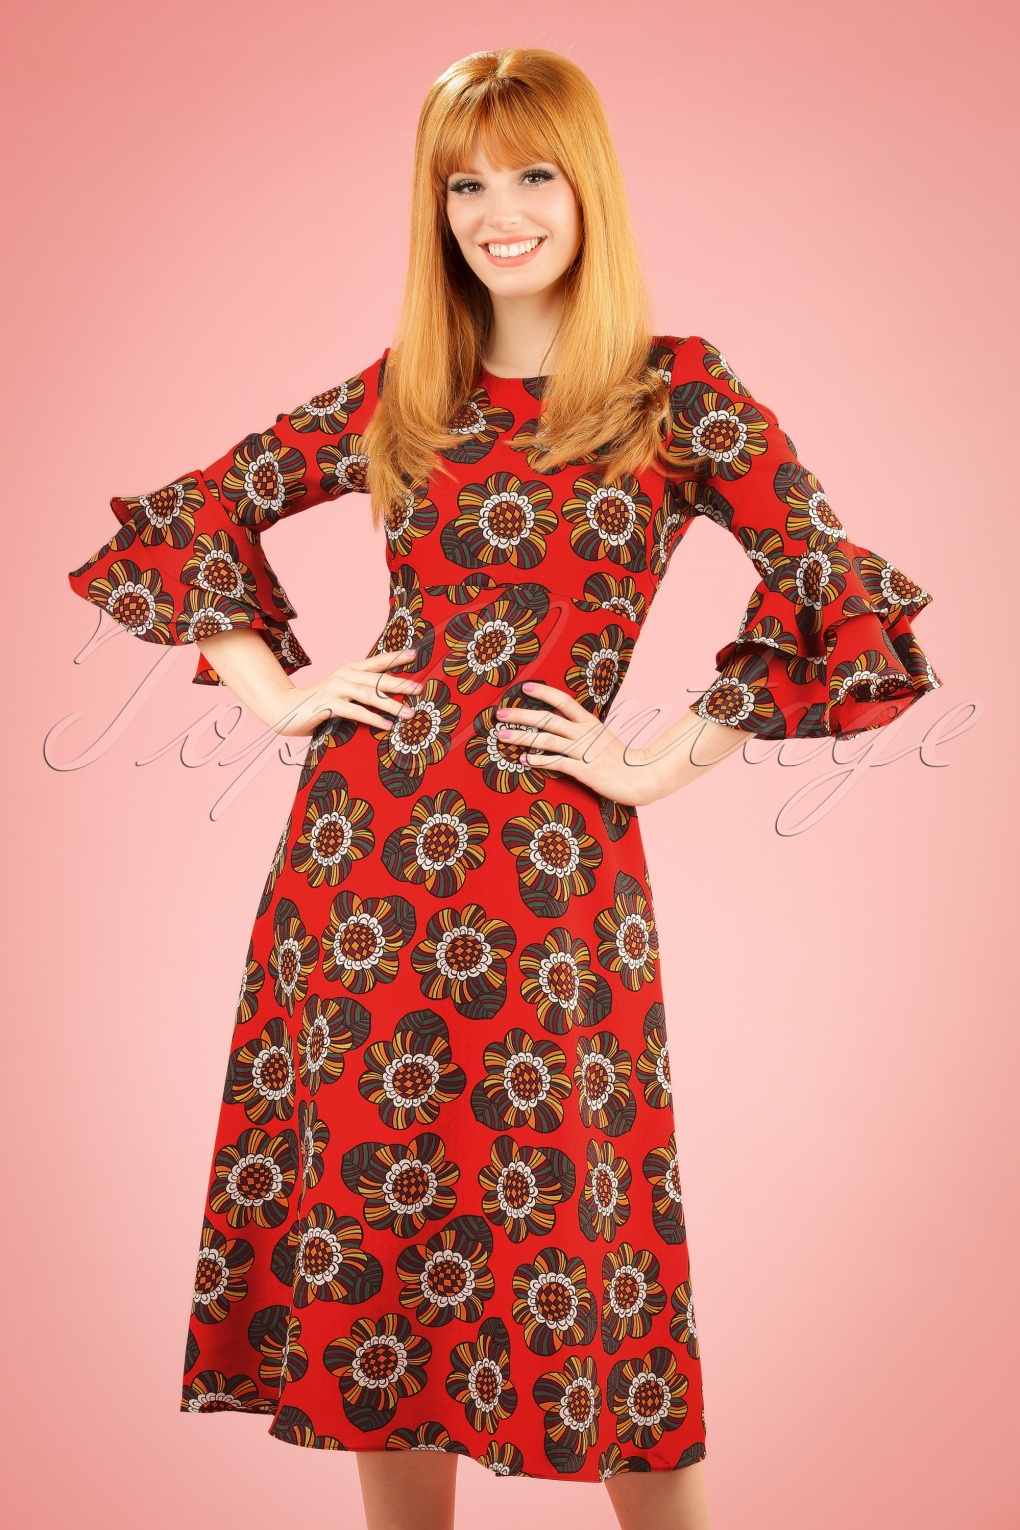 1960s Style Dresses- Retro Inspired Fashion 70s Luck Be A Lady Flower Midi Dress in Tangerine £76.30 AT vintagedancer.com